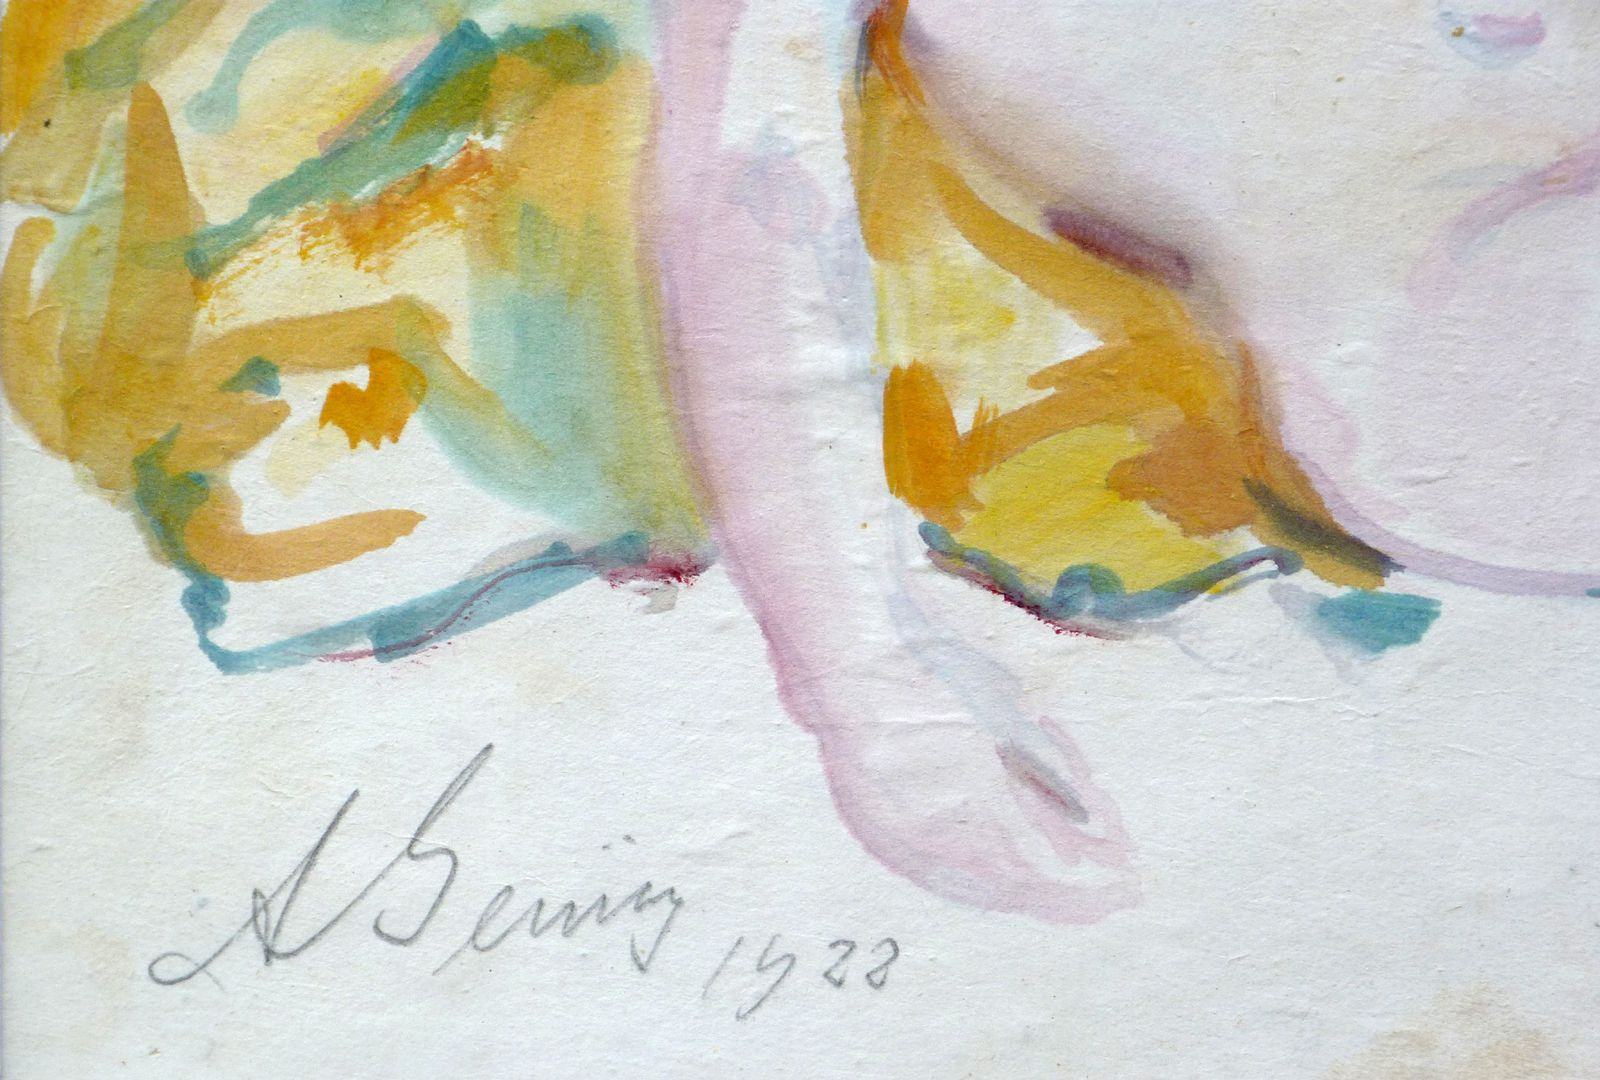 Female nude Detail with artist's signature